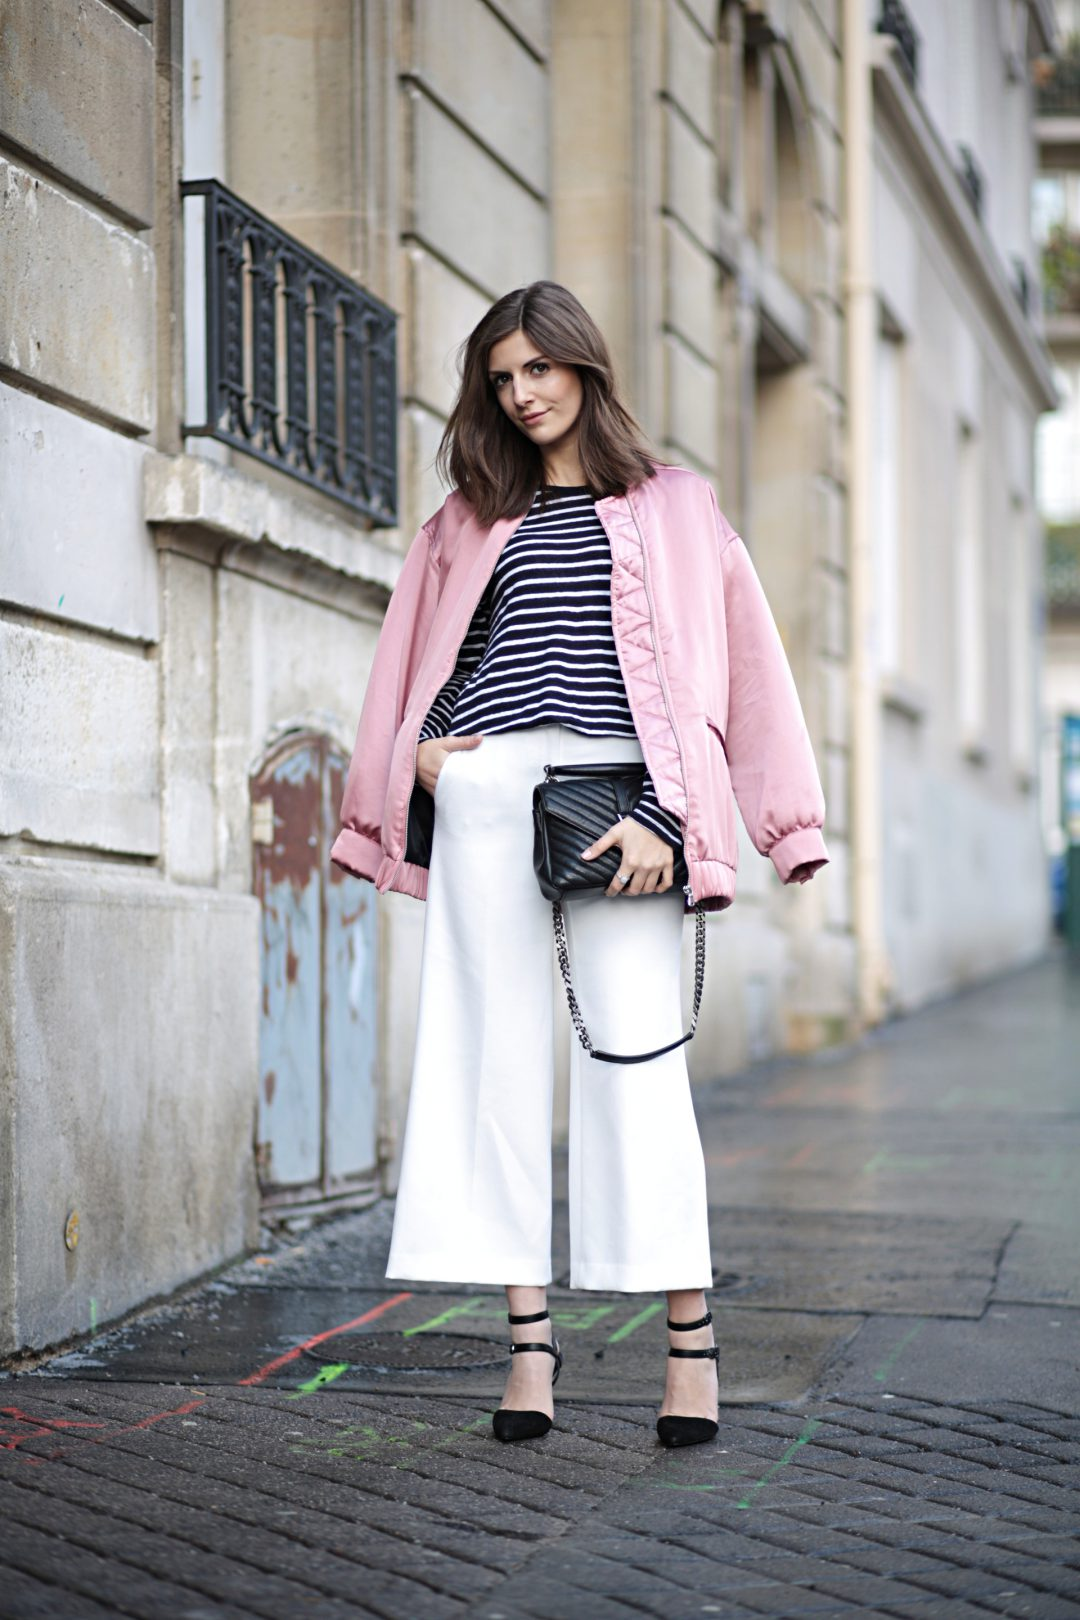 Pink Bomber Jacket at Paris Fashion Week